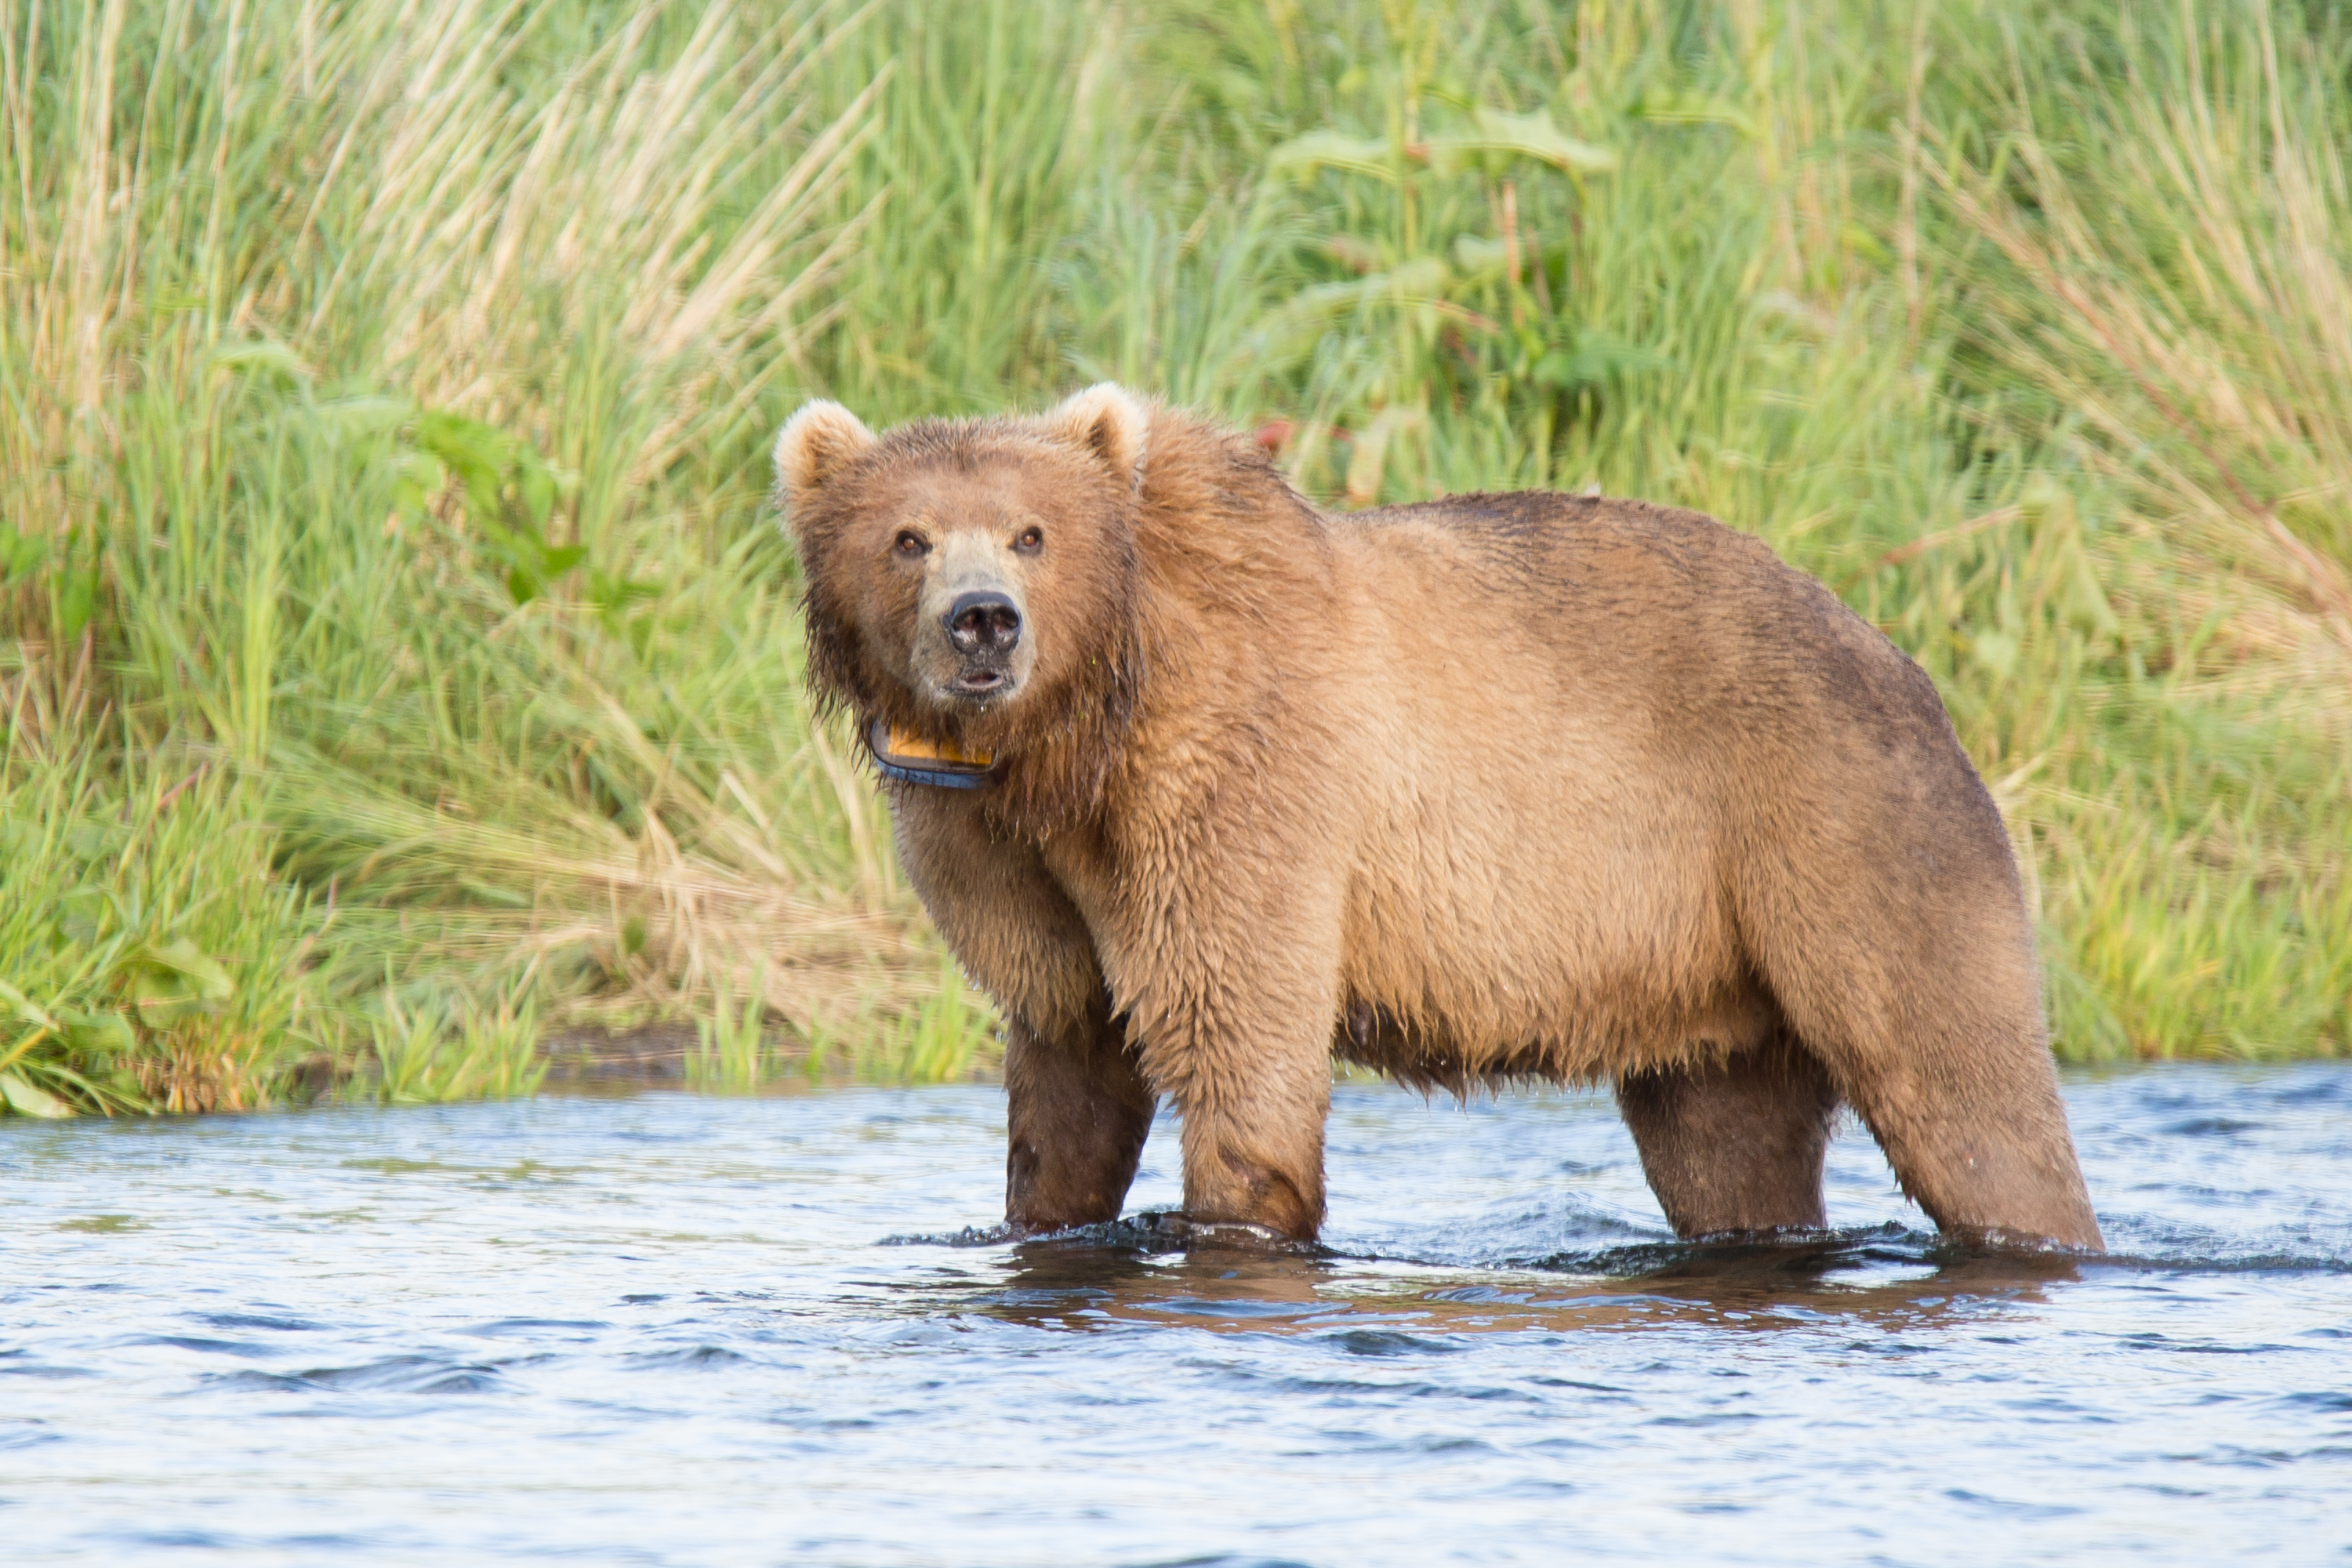 Why are Kodiak bears letting salmon slip away?